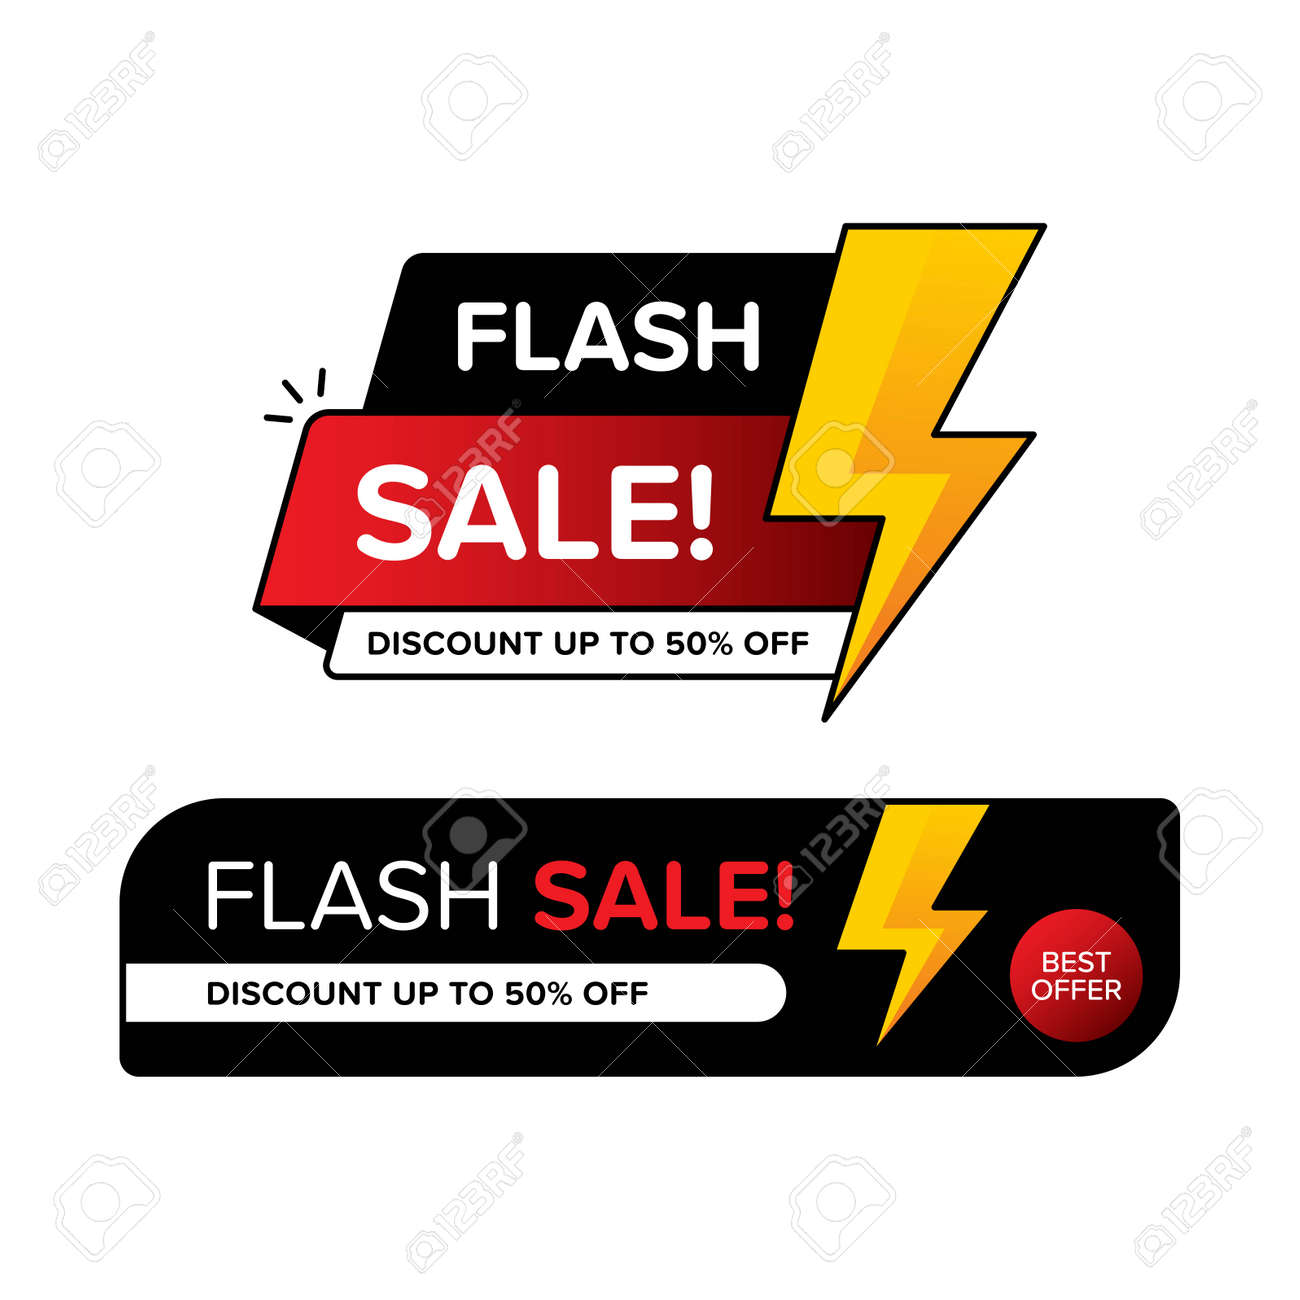 Collection of flash sale banner with price tags for discount. Vector illustration in two different shapes. Premium vector - 162381921